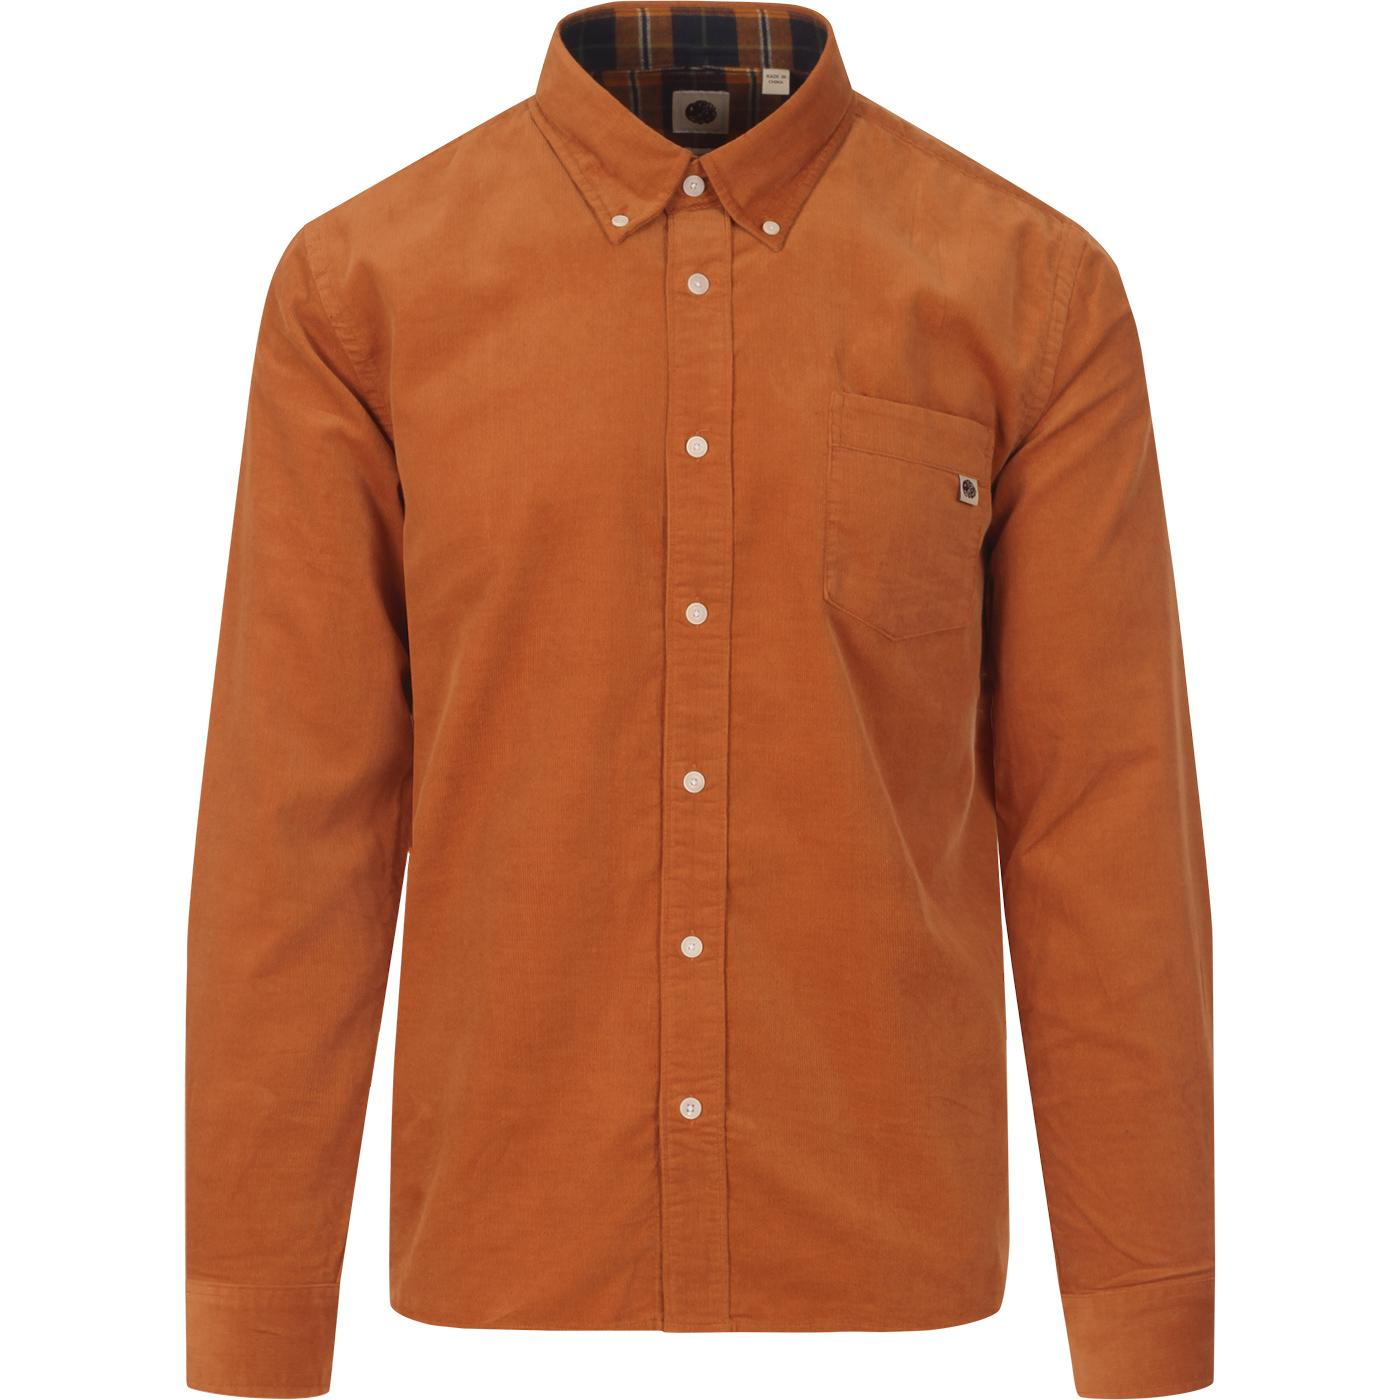 PRETTY GREEN Retro Mod BD Babycord Shirt (Orange)